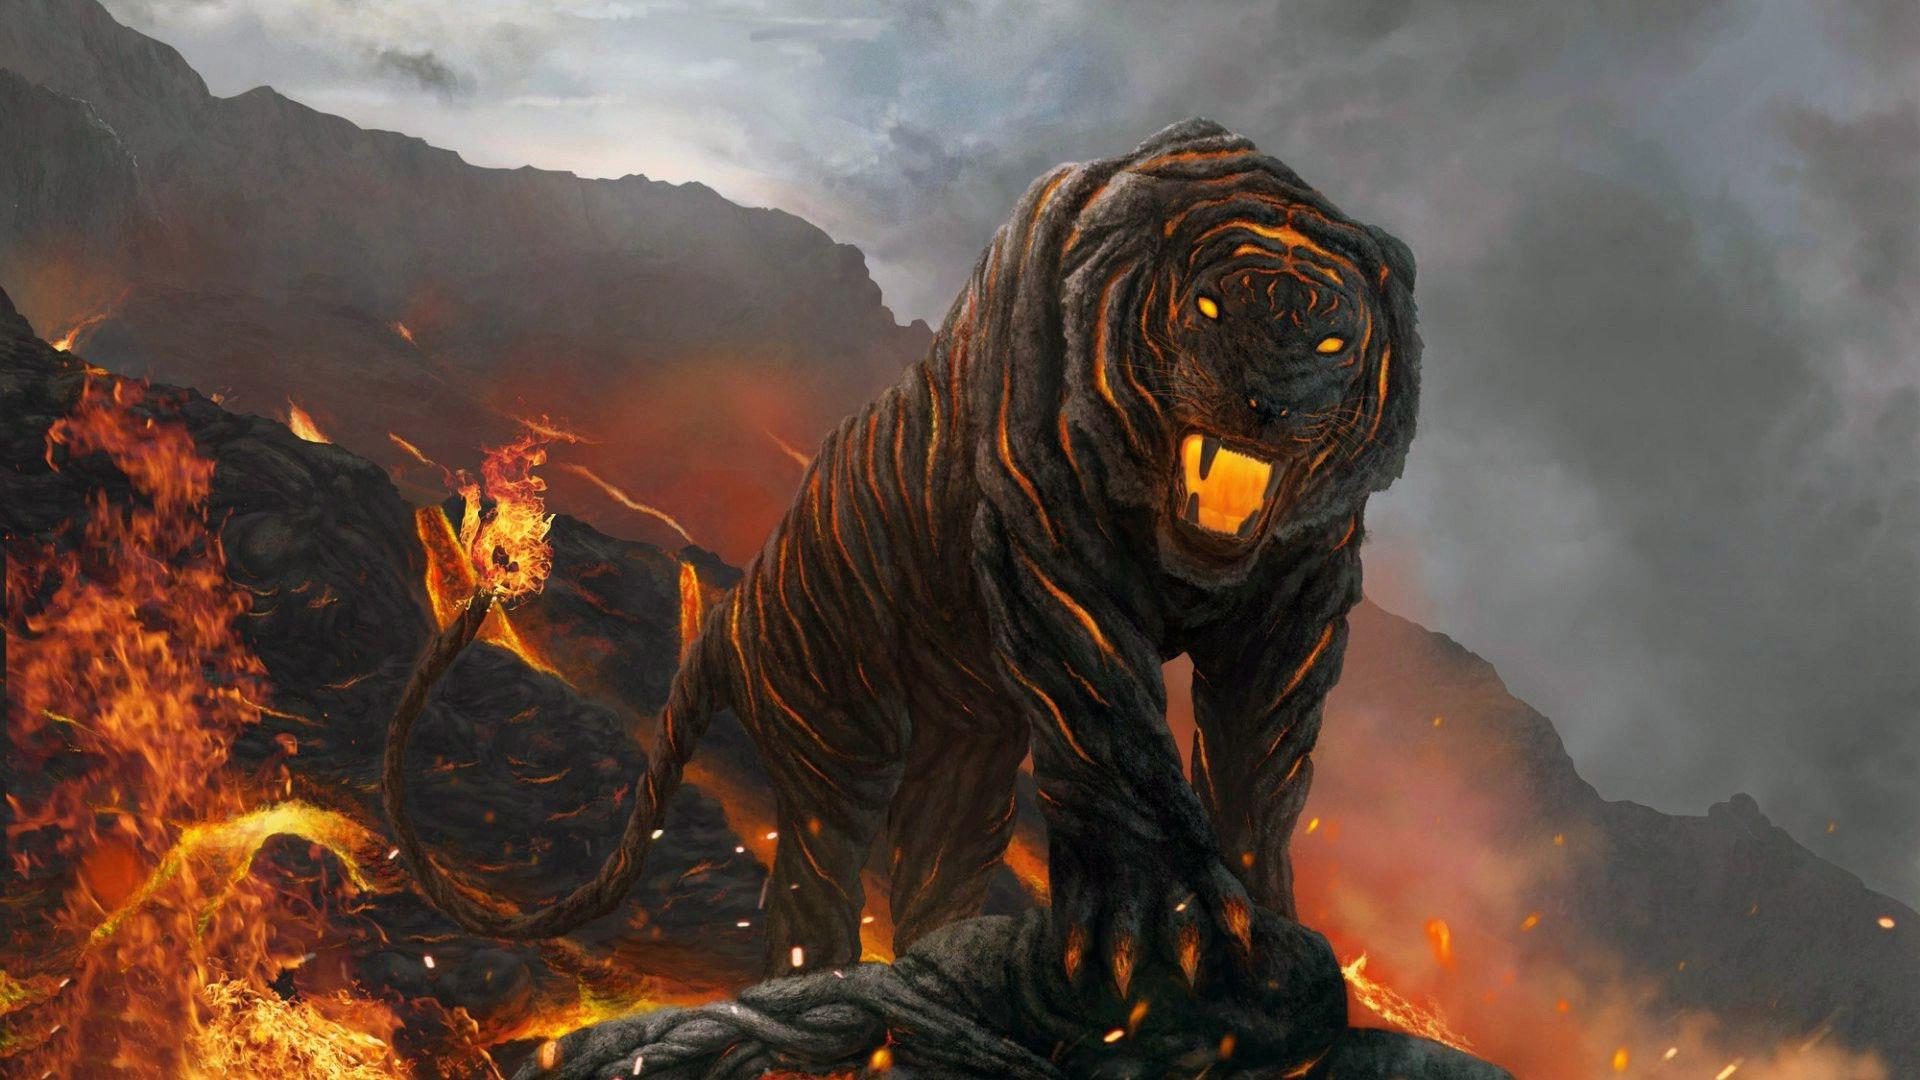 Tiger Head Fire Wallpaper Download Hd Collection | Hd Wallpapers .